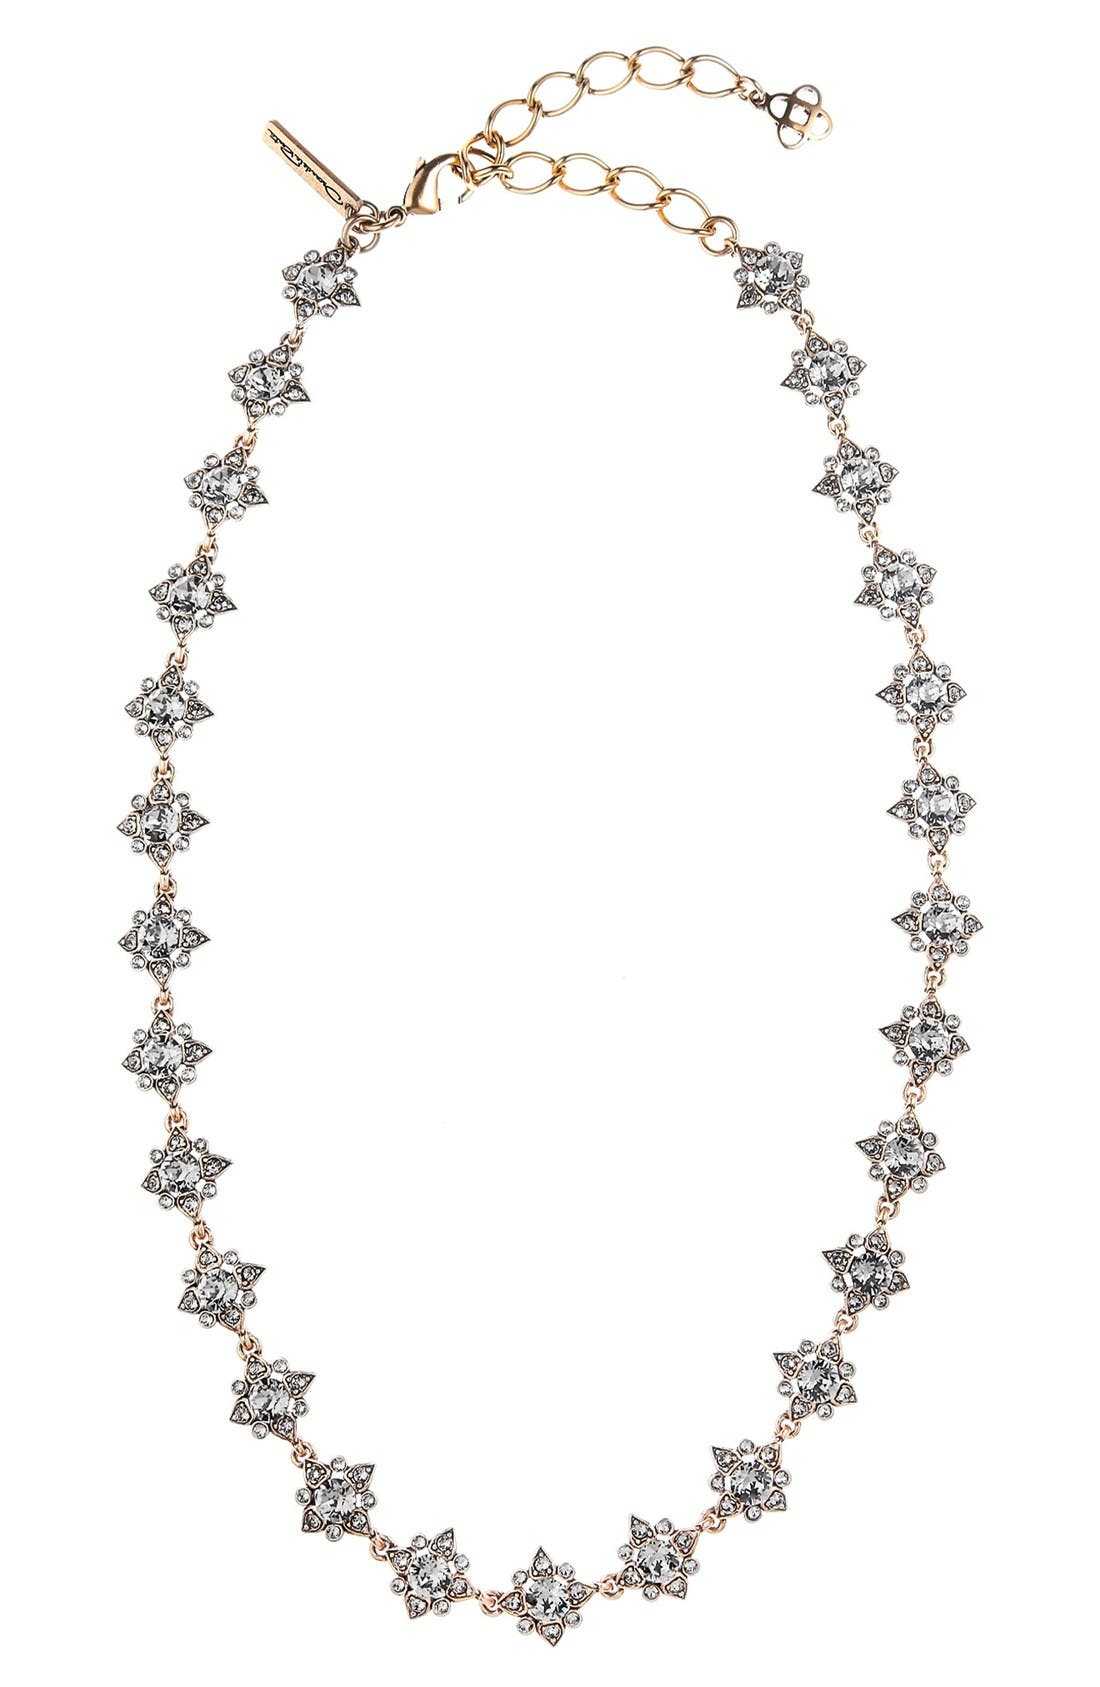 'Delicate Star' Swarovski Crystal Collar Necklace,                             Main thumbnail 1, color,                             Black